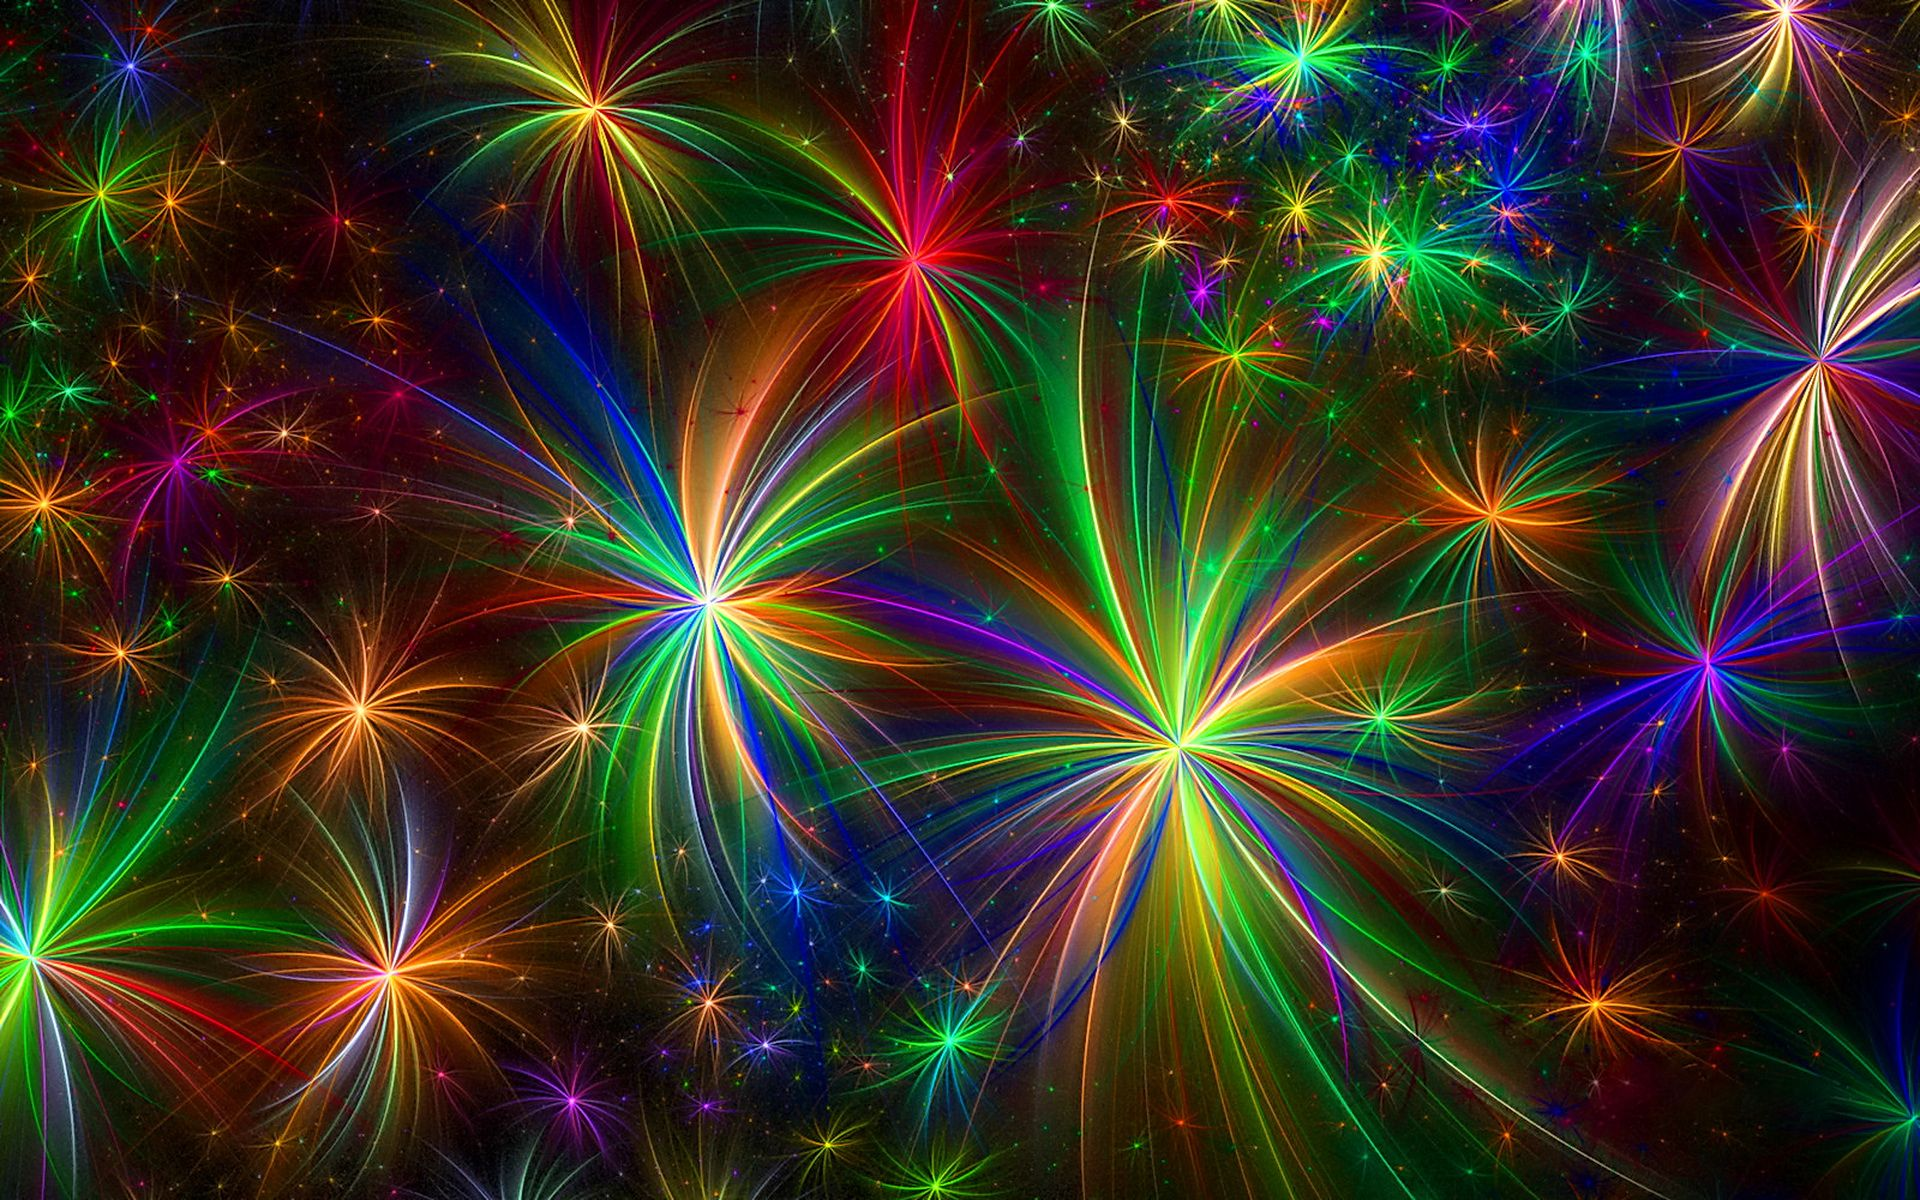 rainbow firework wallpaper hd resolution | fireworks | pinterest